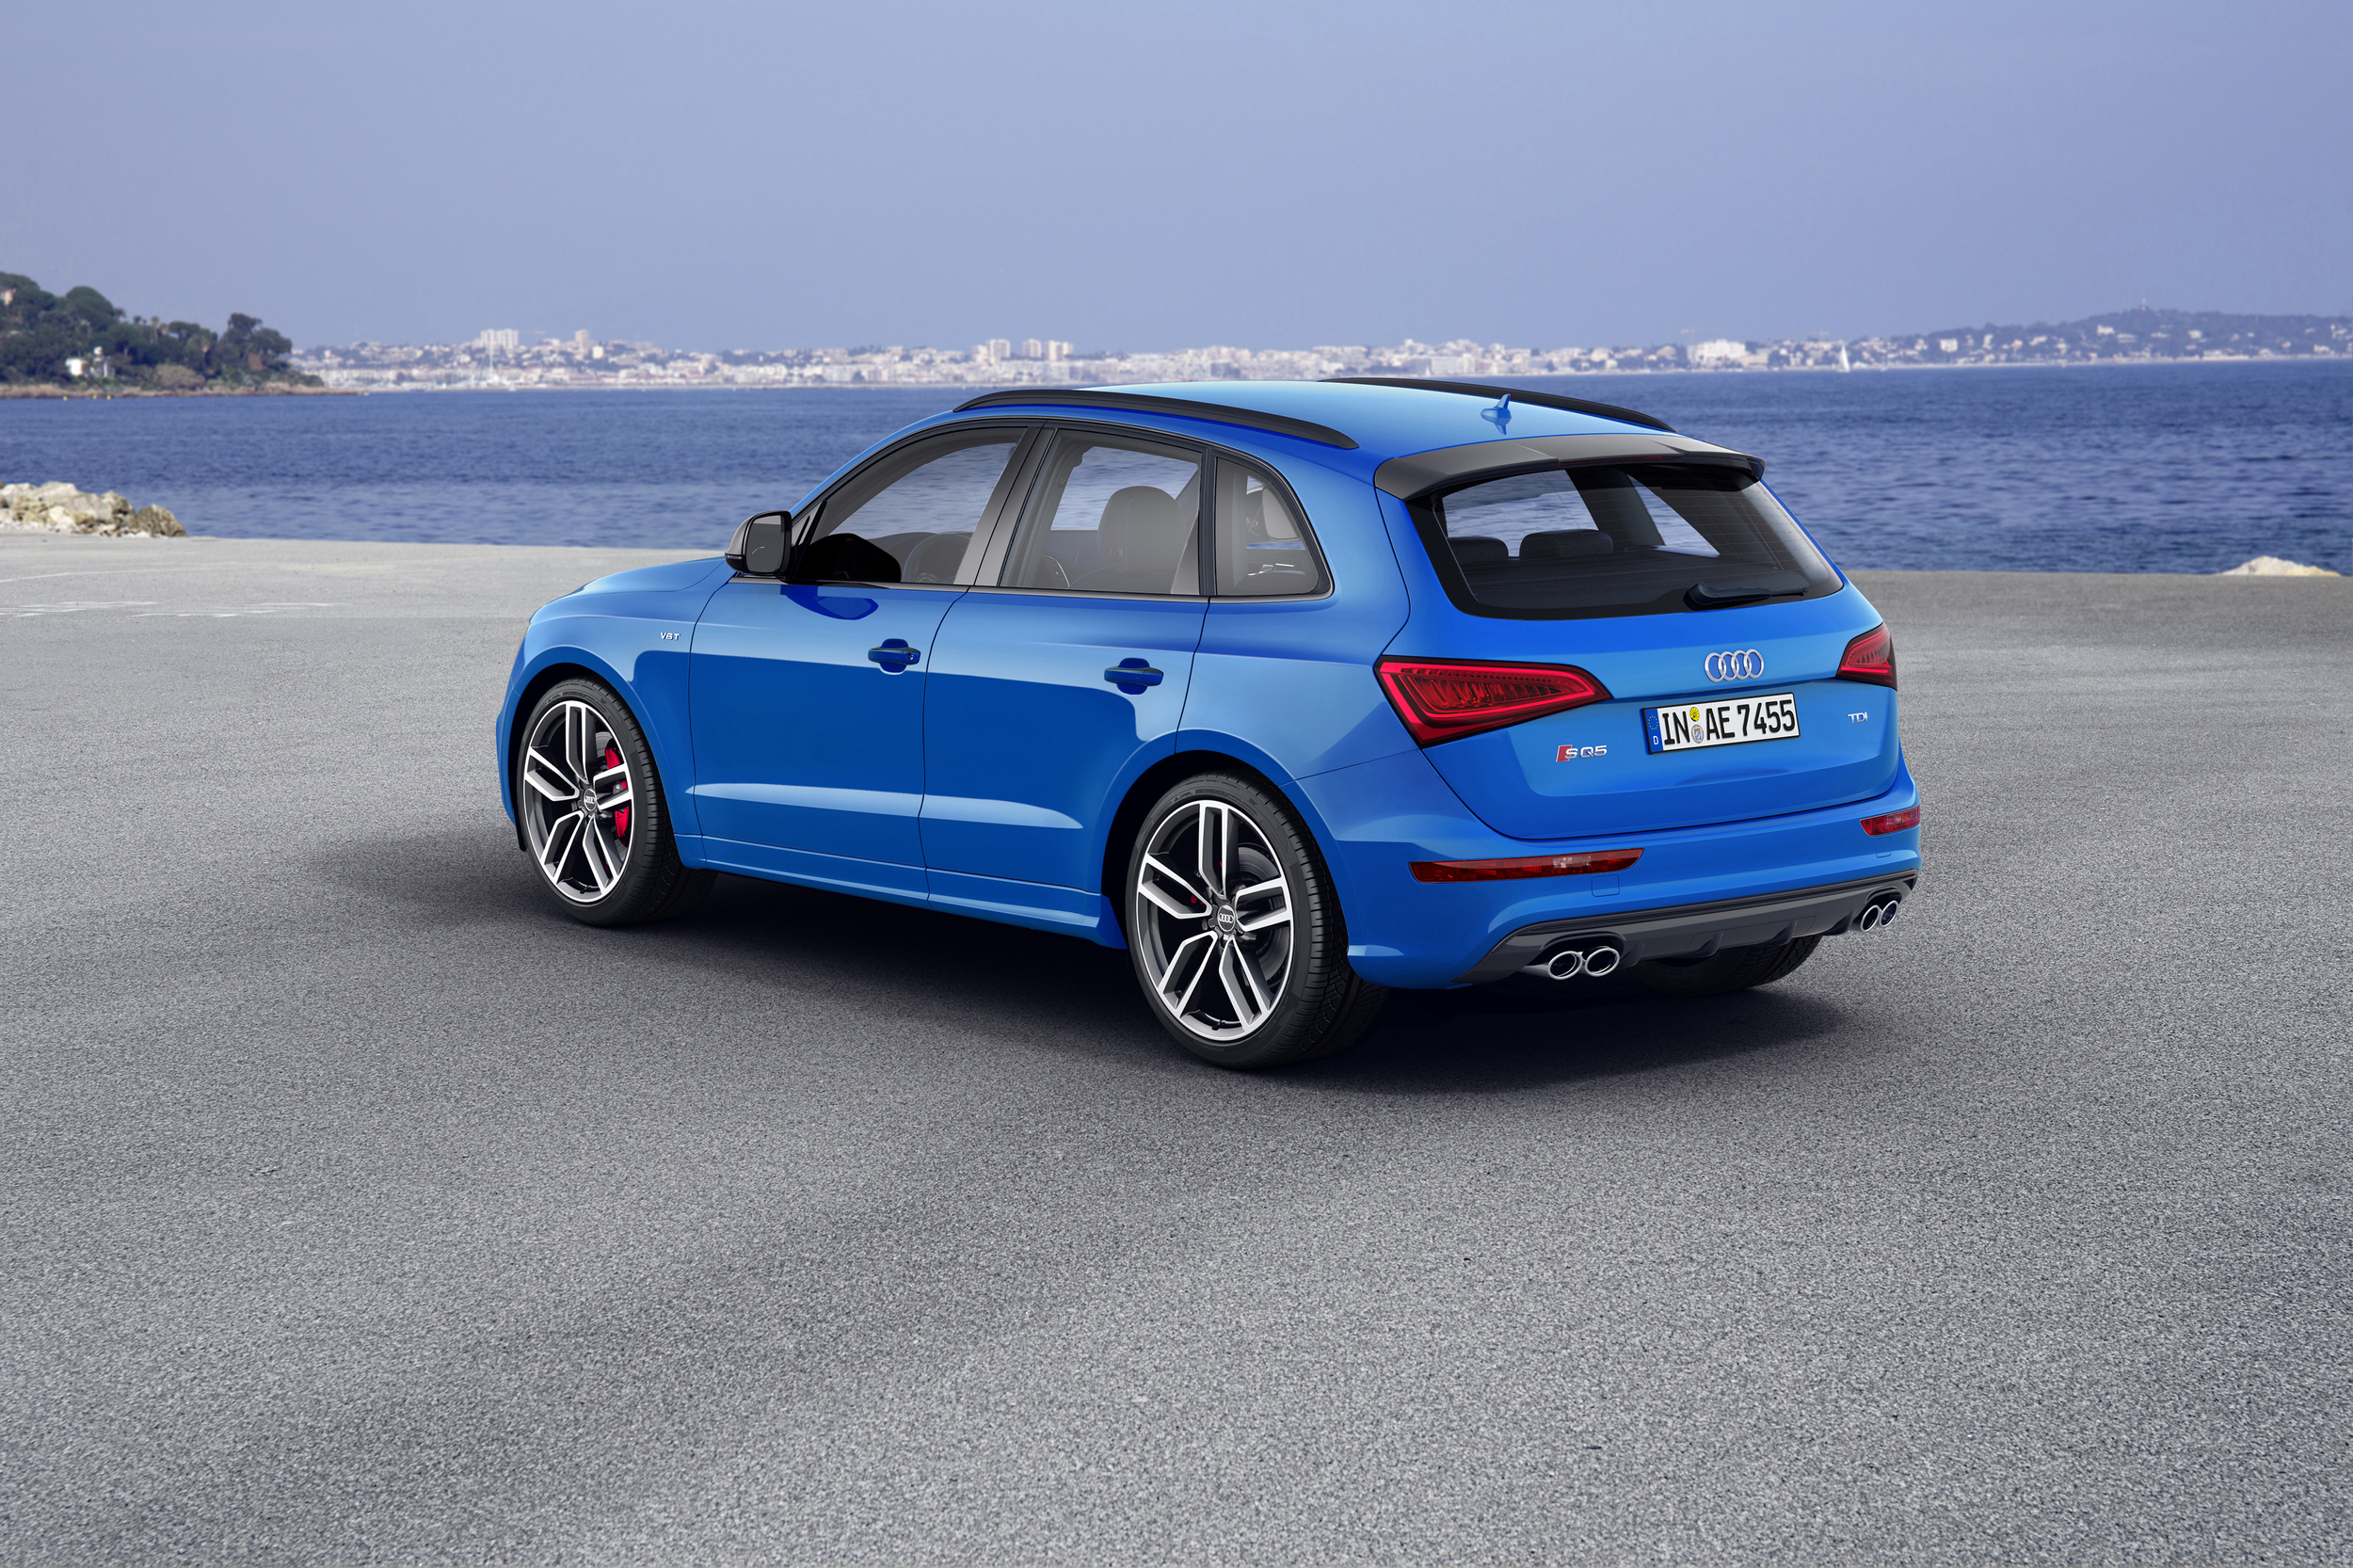 2016 Audi Sq5 Tdi Plus Blue (Photo 2 of 9)